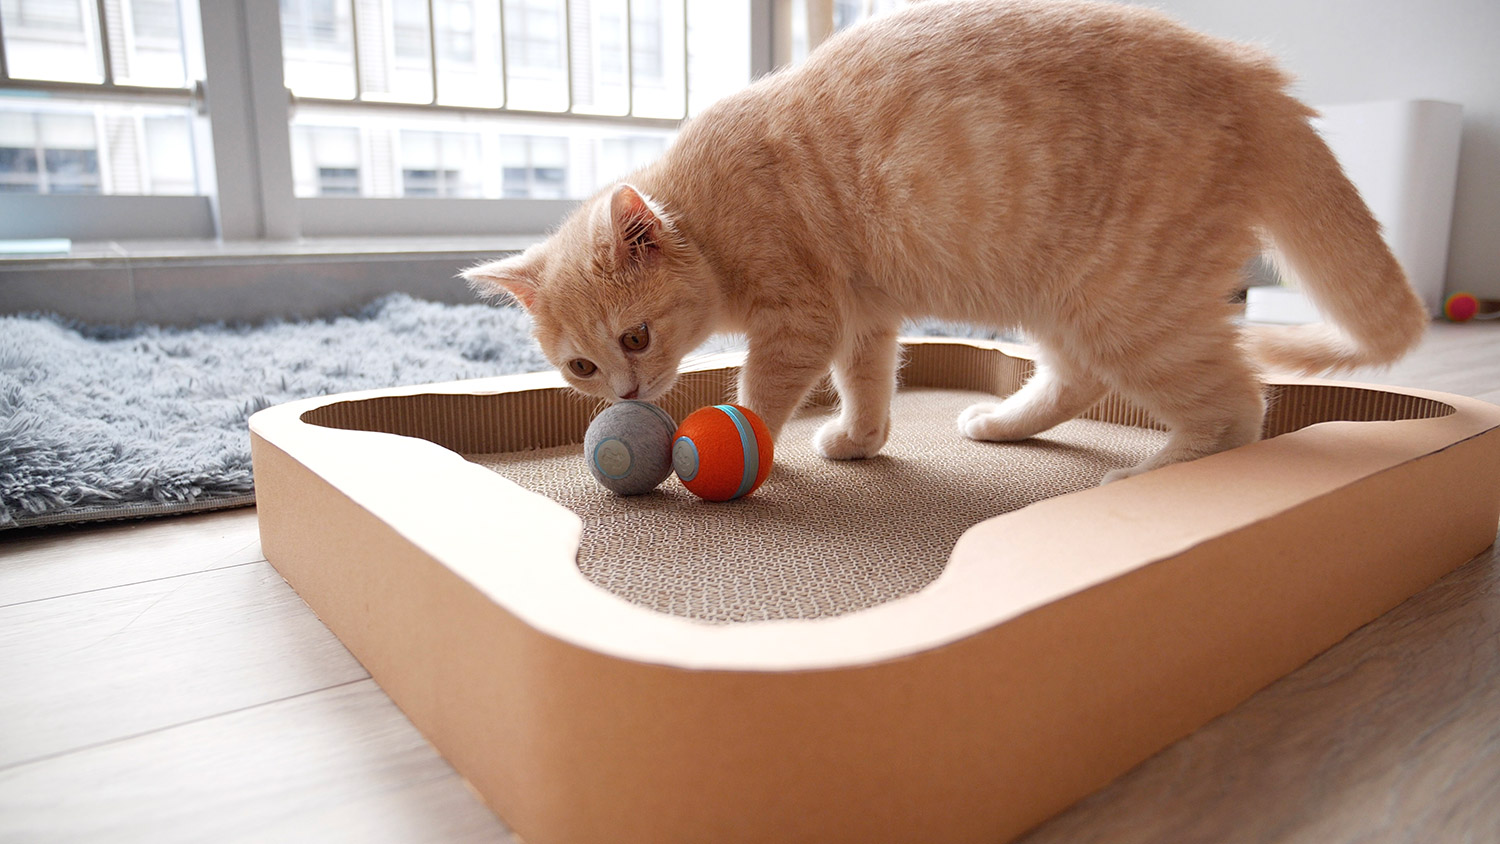 Cheerble Cat Board Game - Interactive Cat Board Game Has a Robotic Ball That Will Keep Them Busy For Hours